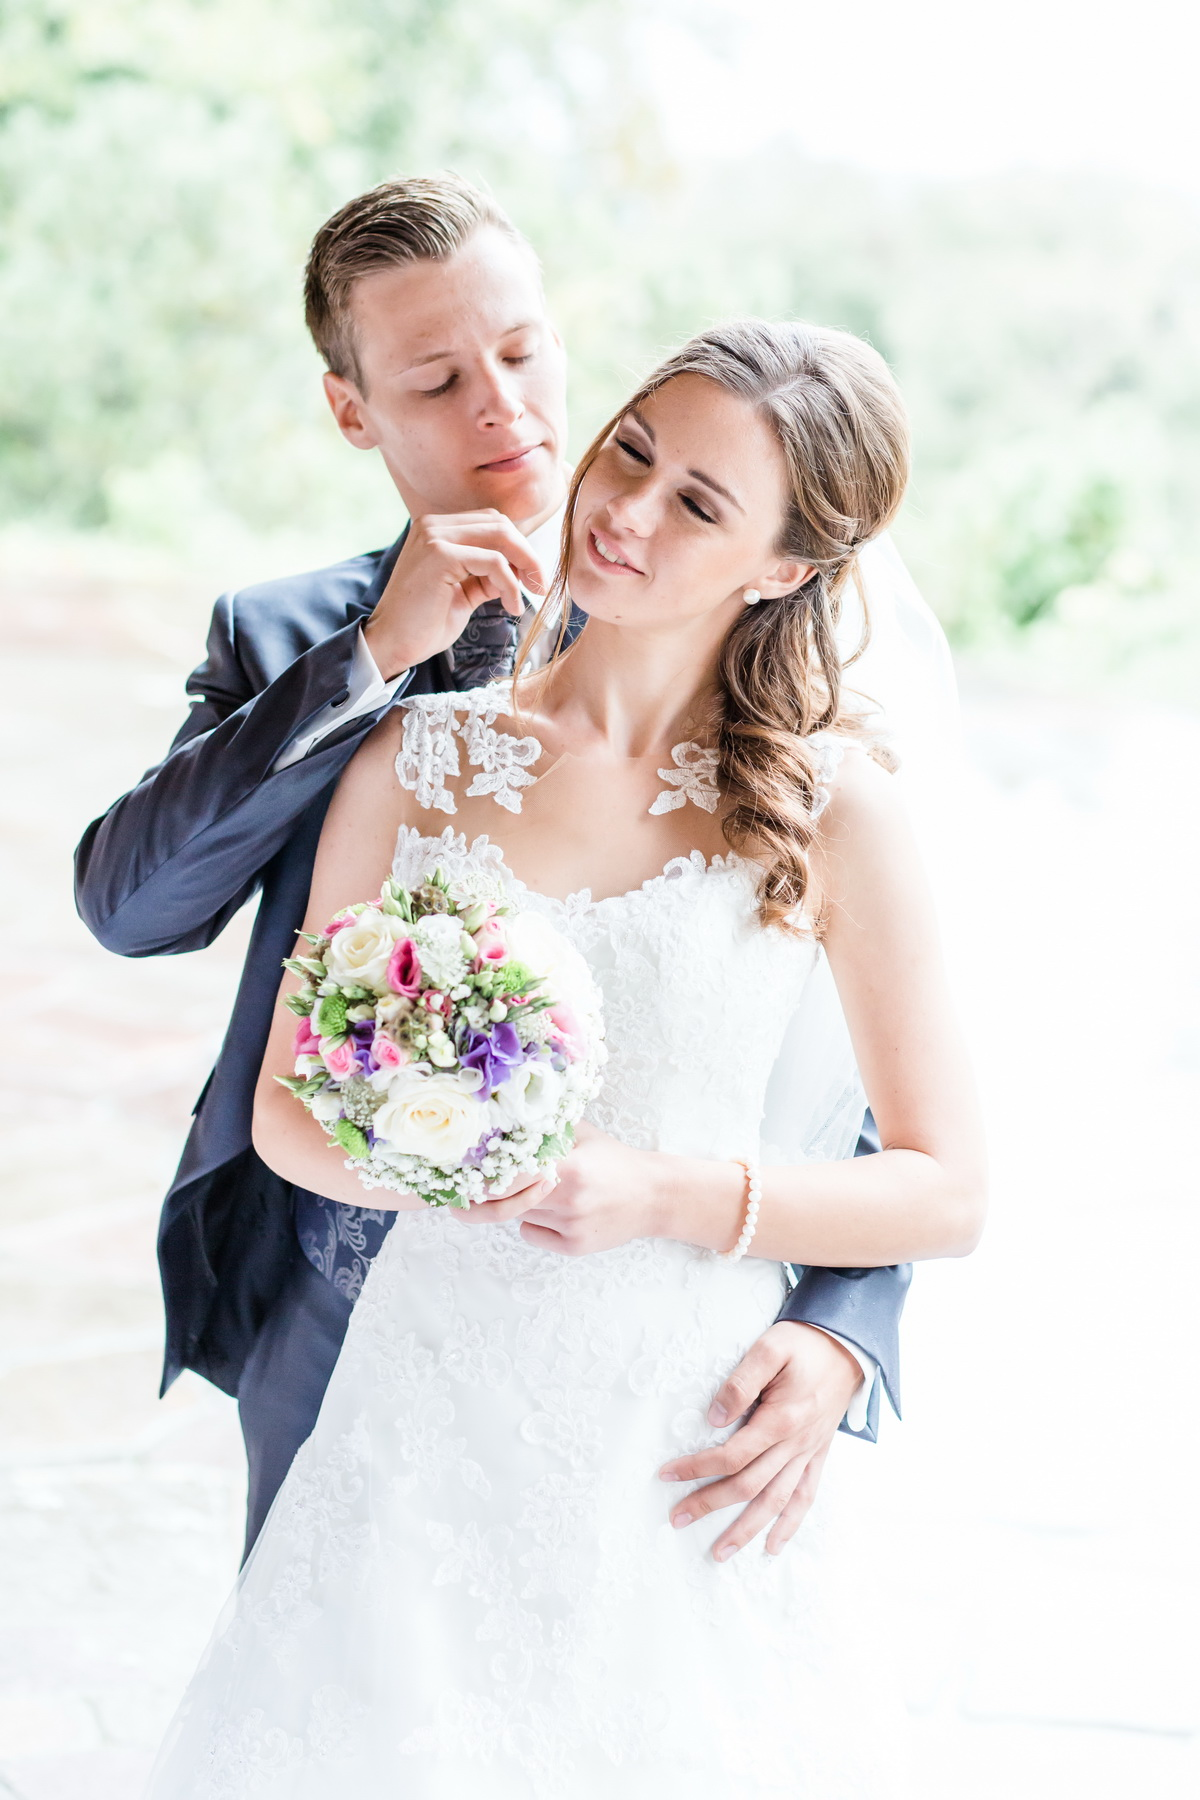 Claudia Sittig Photography - Couple - Hochzeit  Wedding - Selina und Richard 37